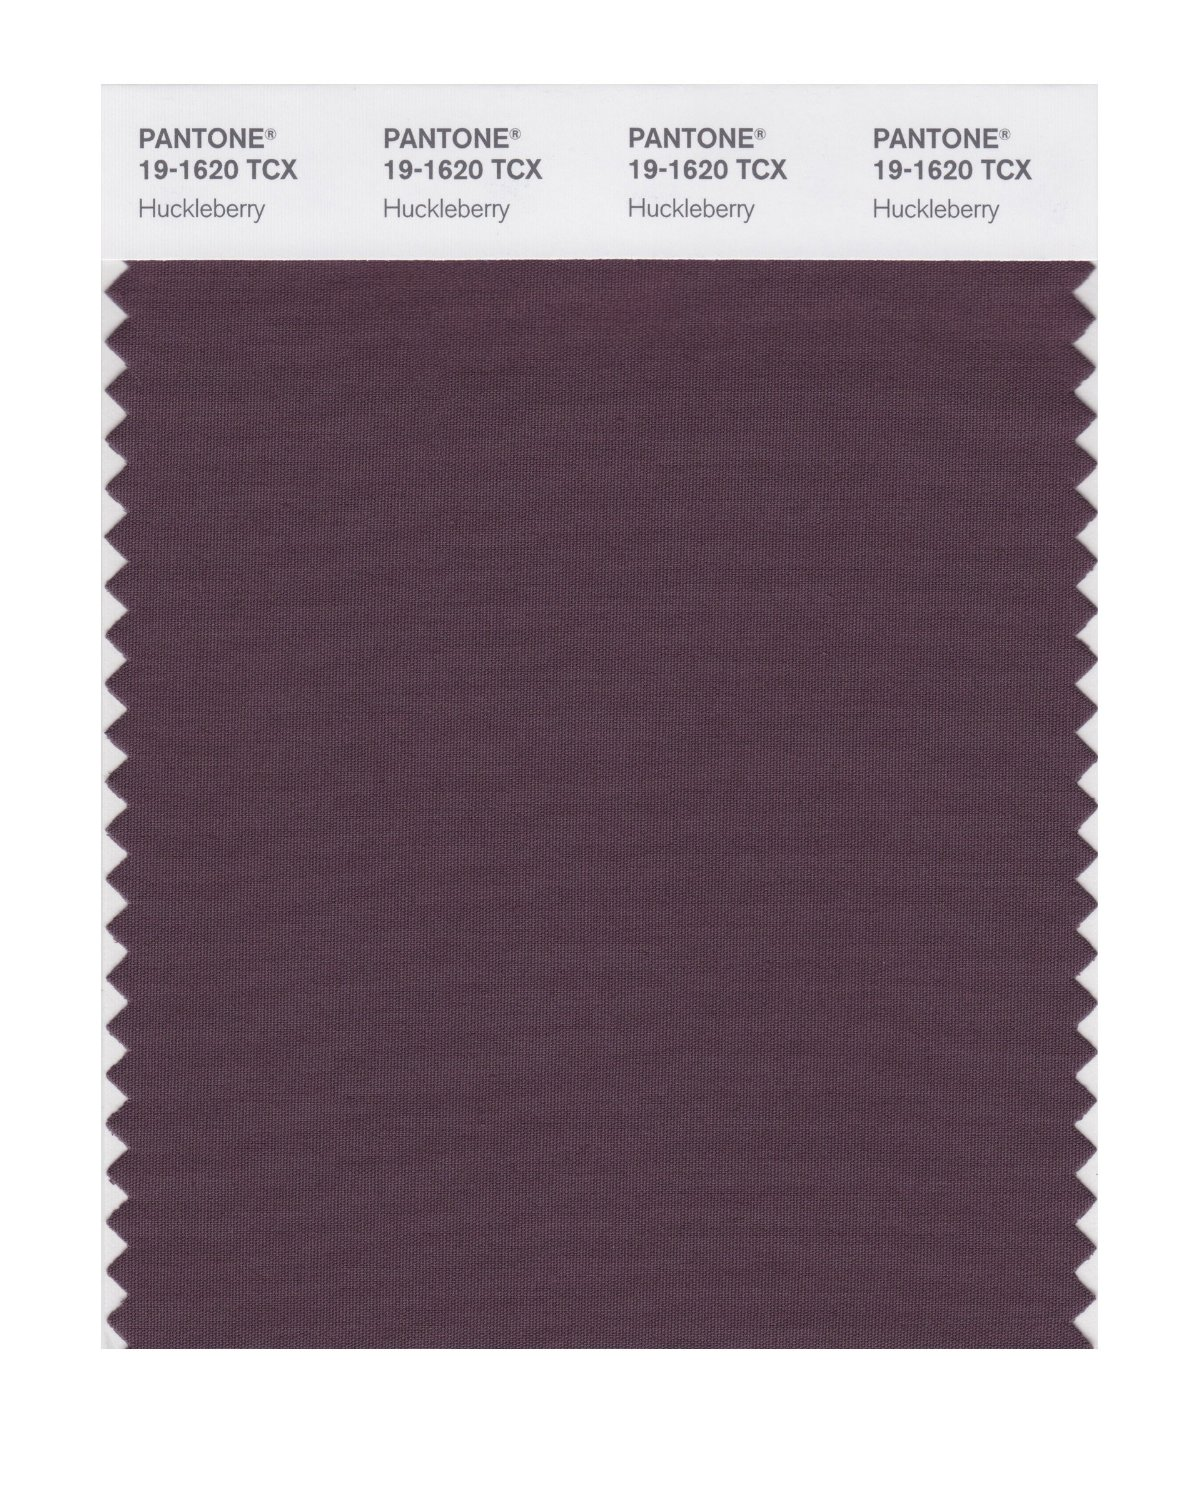 Pantone Smart Swatch 19-1620 Huckleberry